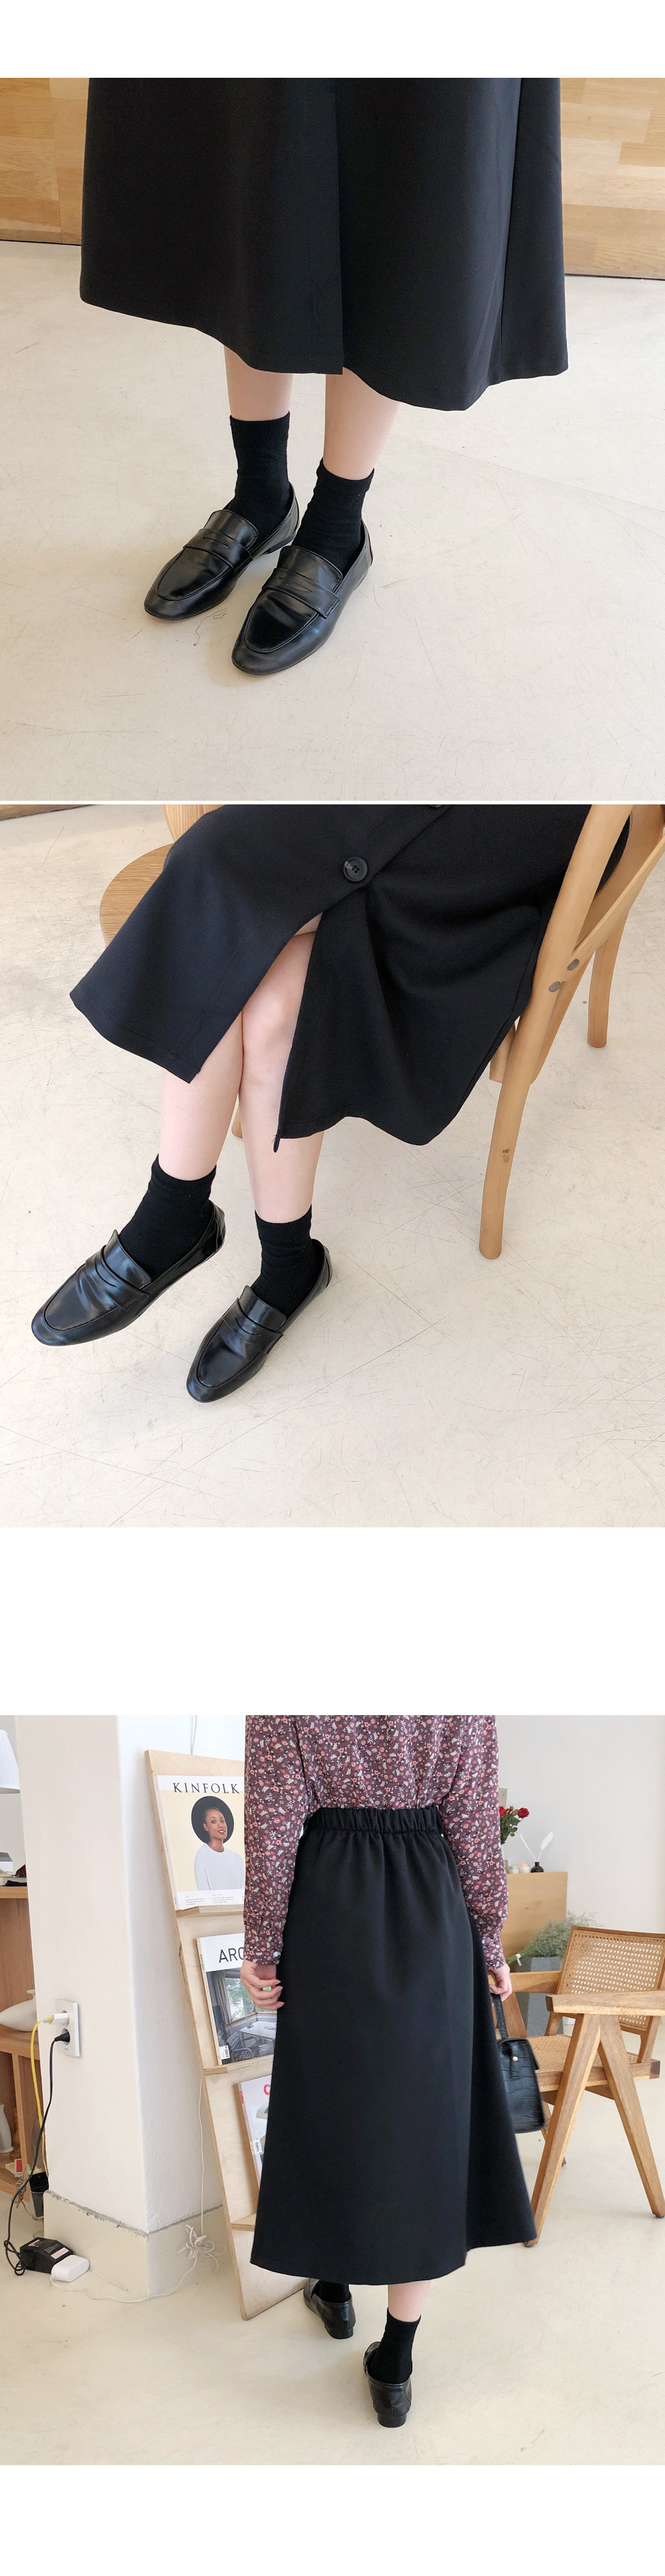 Daily simple button skirt